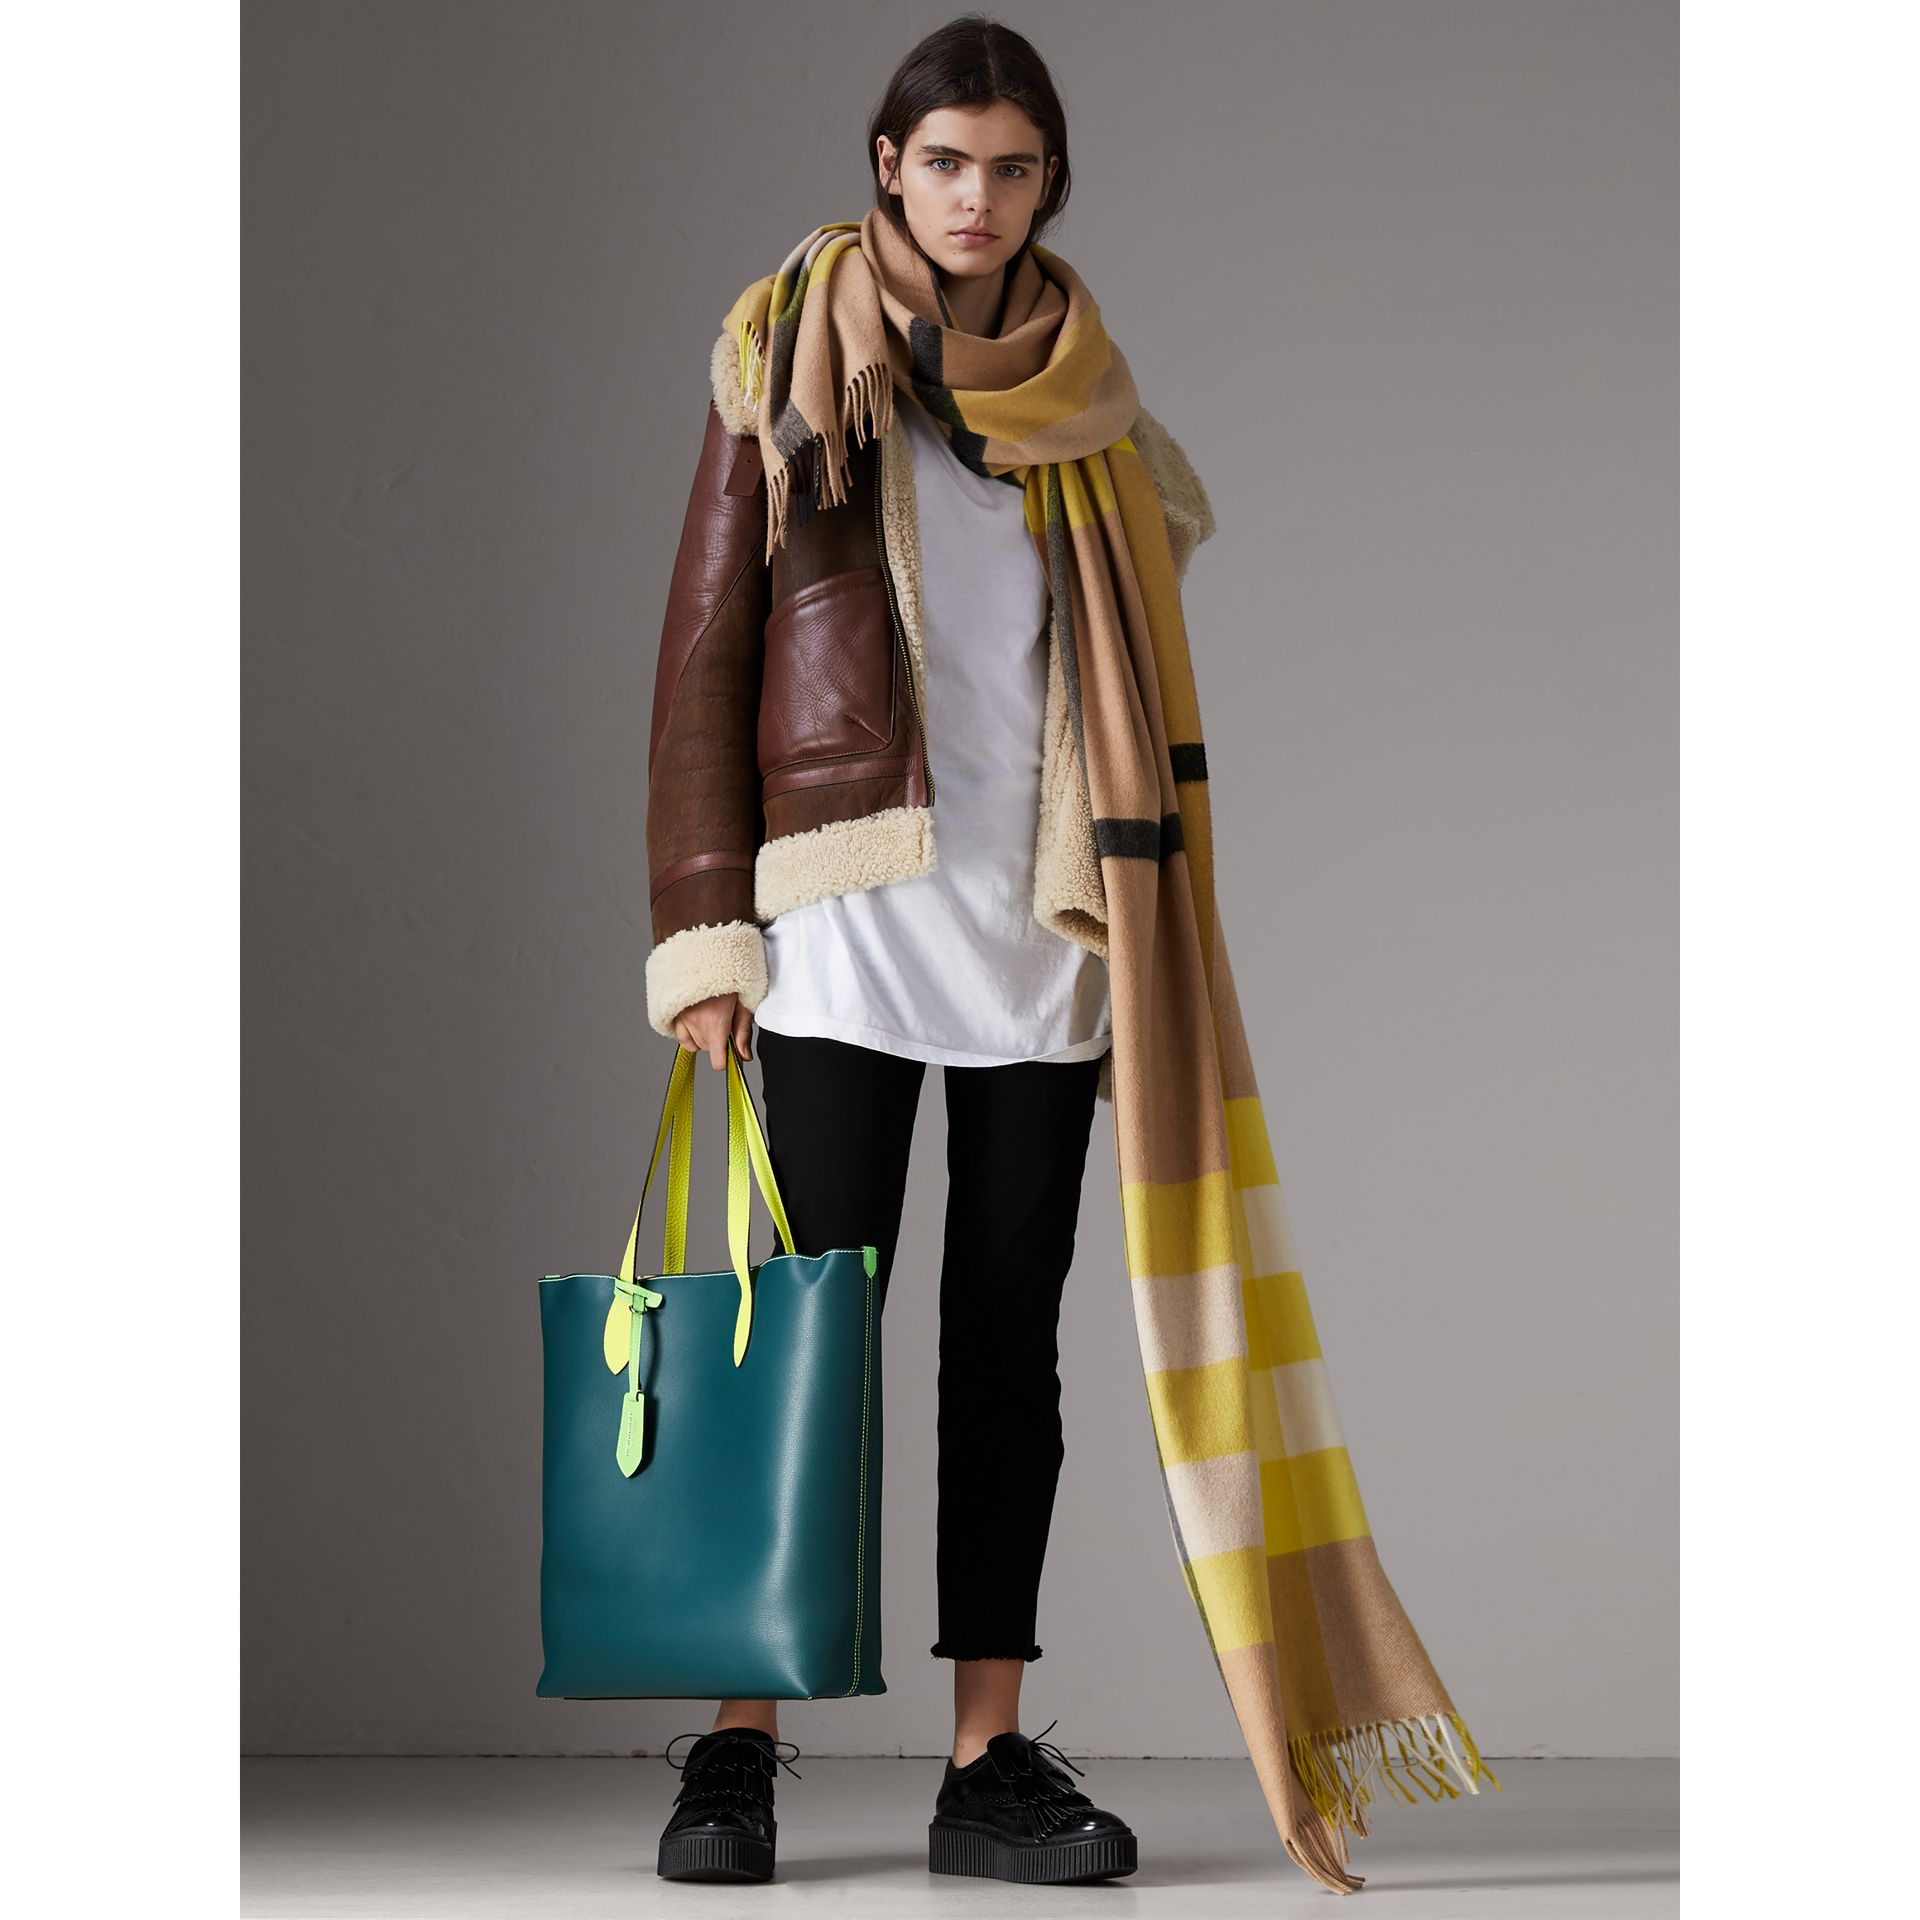 Medium Two-tone Coated Leather Tote in Dark Teal | Burberry United States - gallery image 2